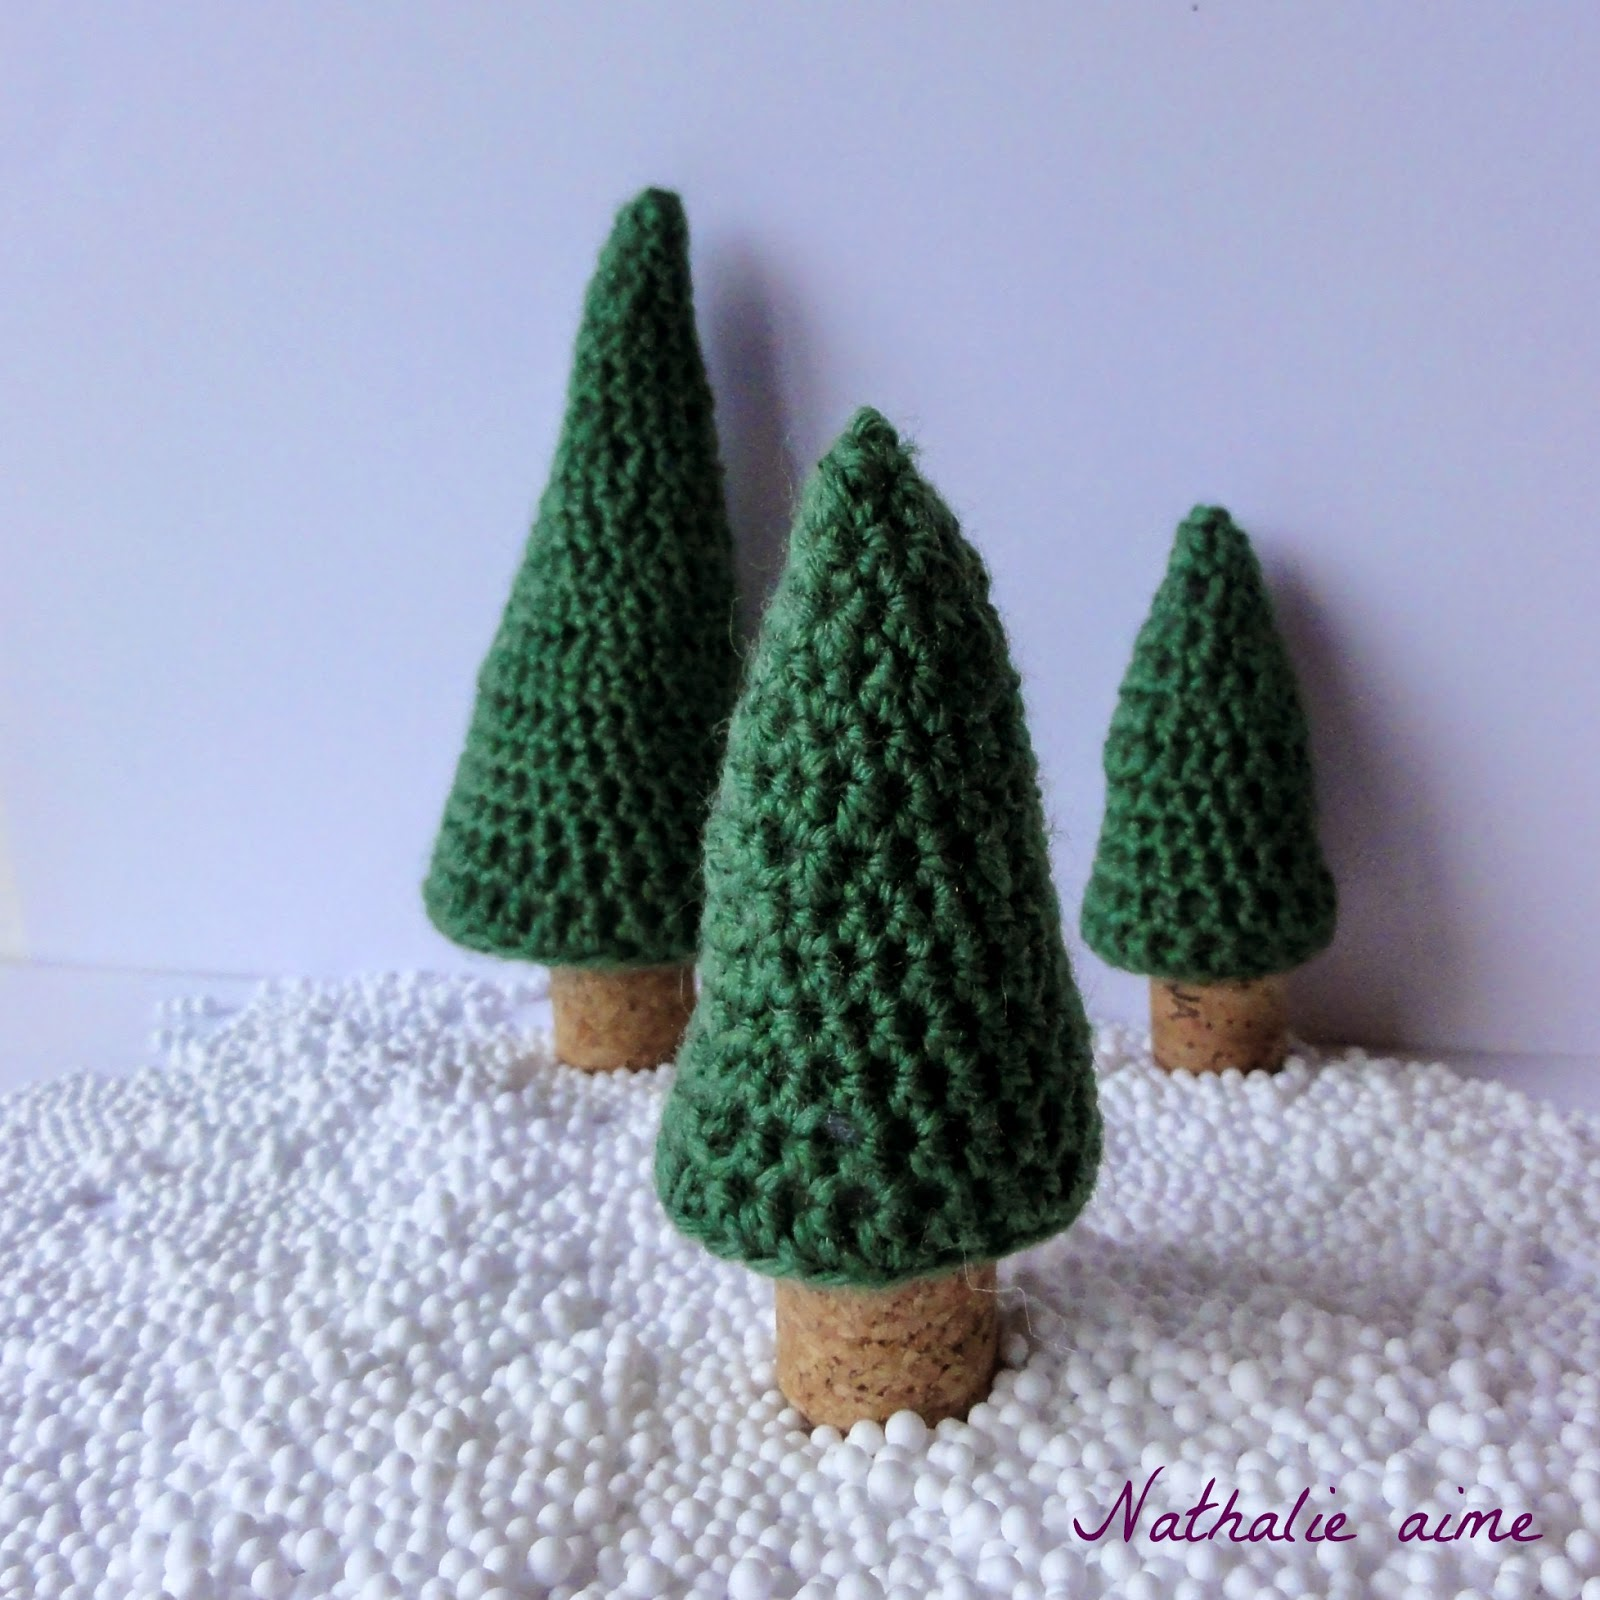 nathalie m sc 253 sapins de no l au crochet pour ma d co. Black Bedroom Furniture Sets. Home Design Ideas